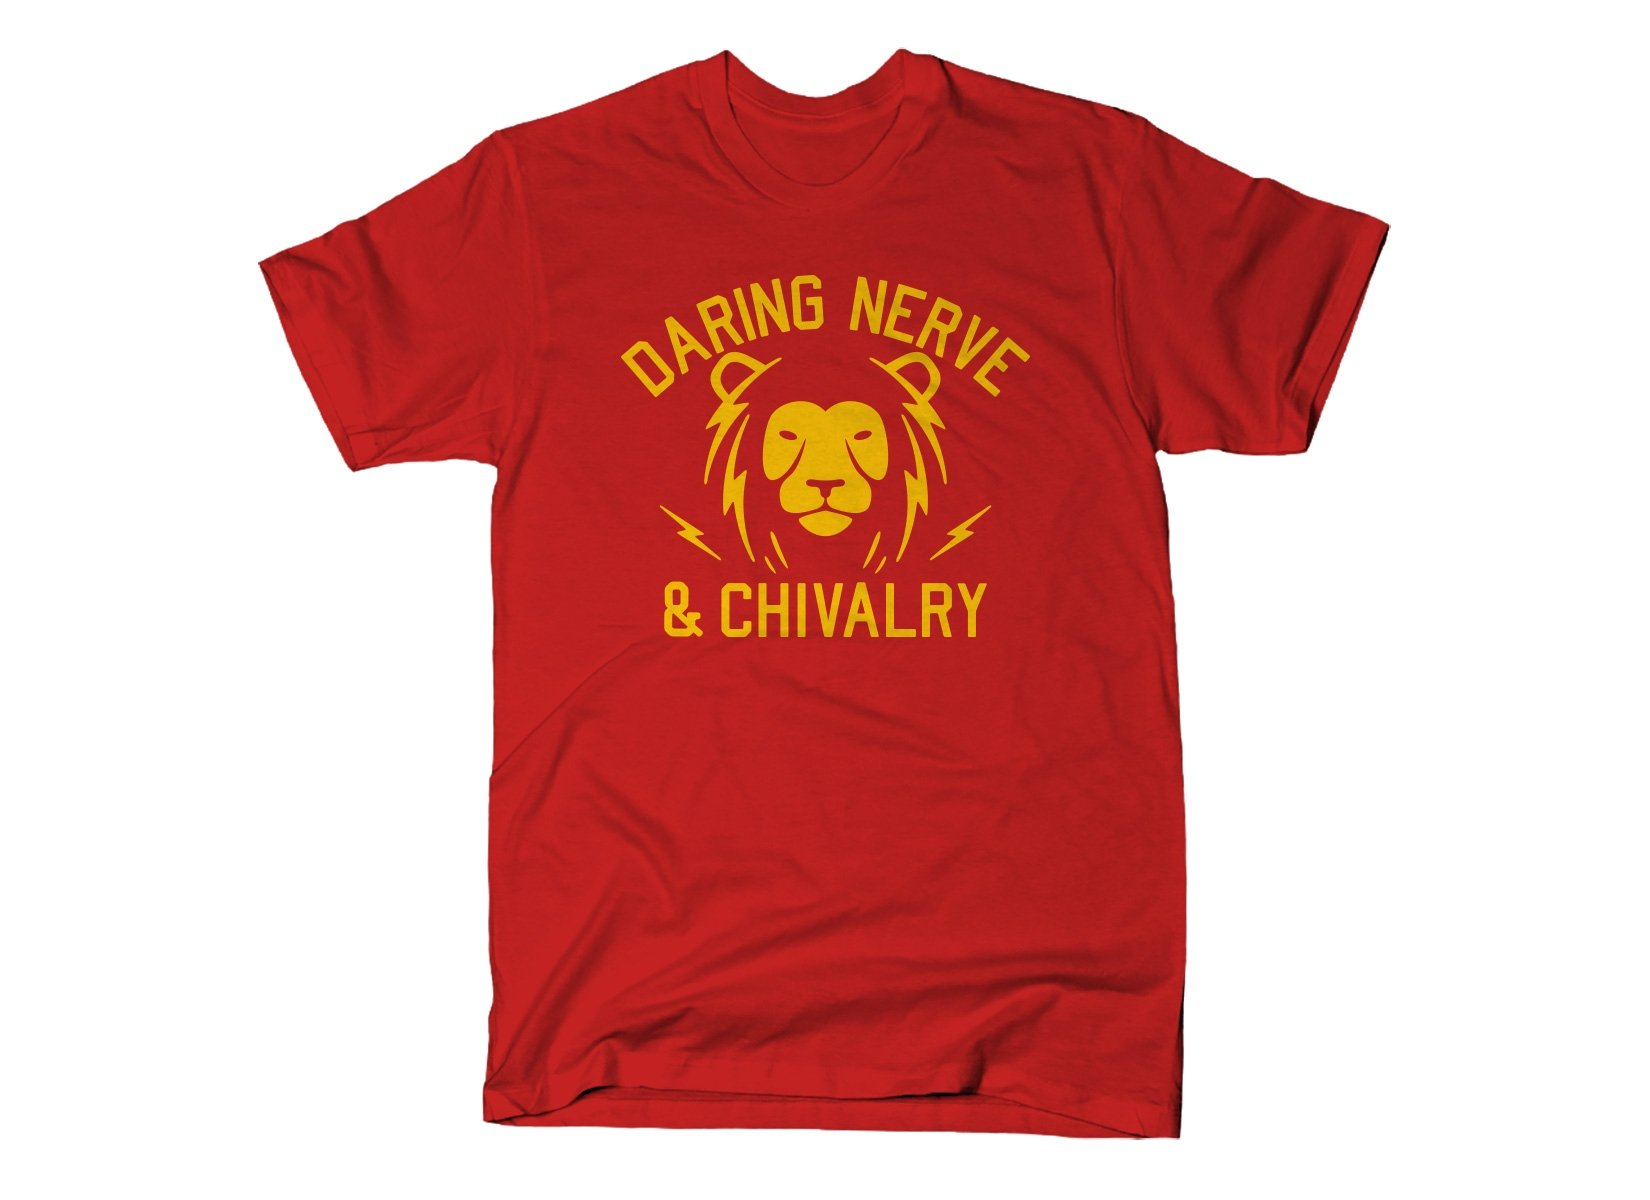 Daring, Nerve, And Chivalry on Mens T-Shirt